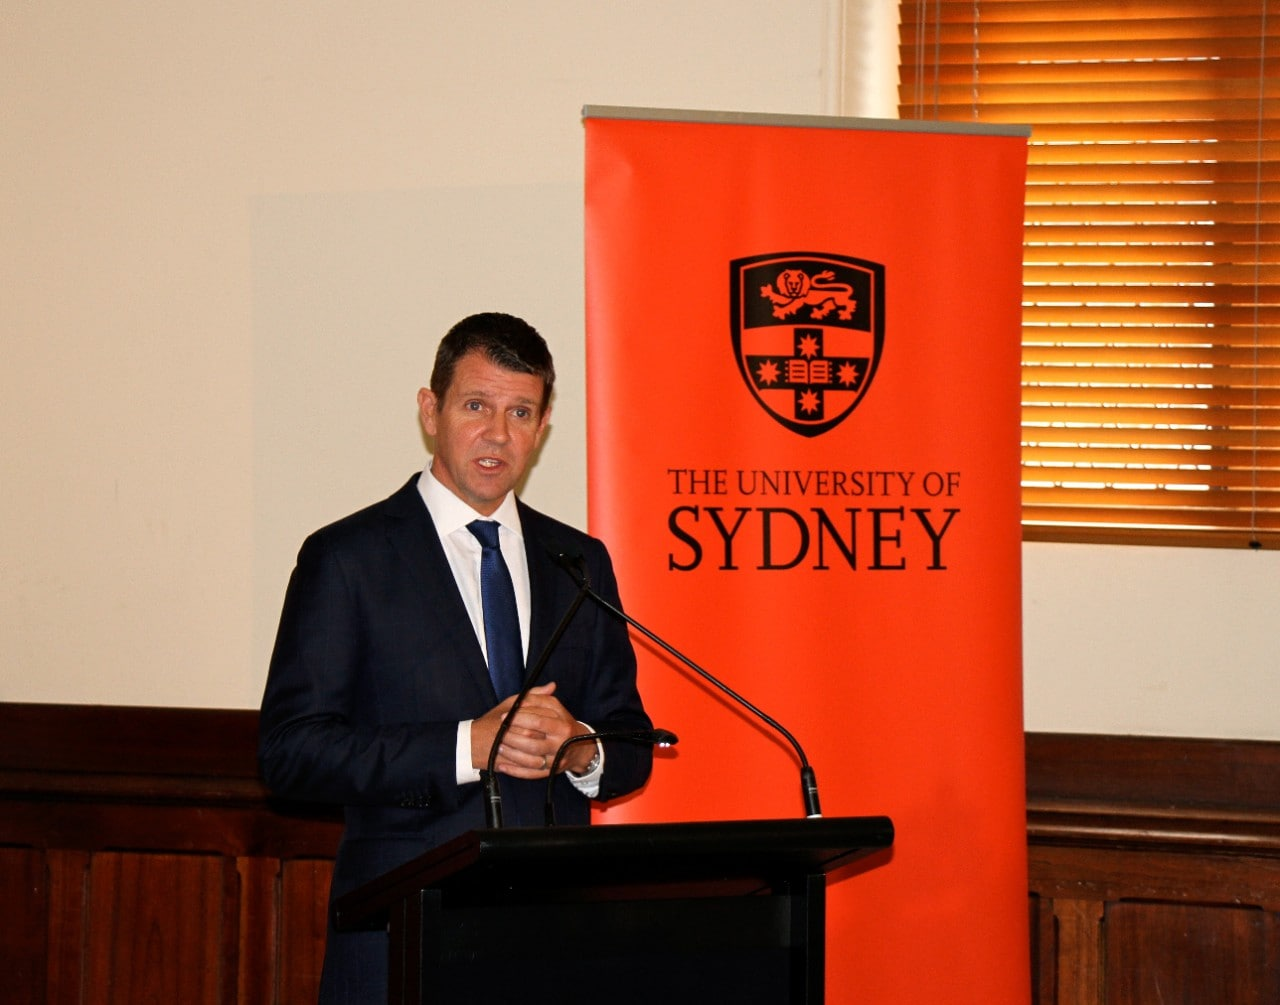 NSW Premier Mike Baird at the University of Sydney